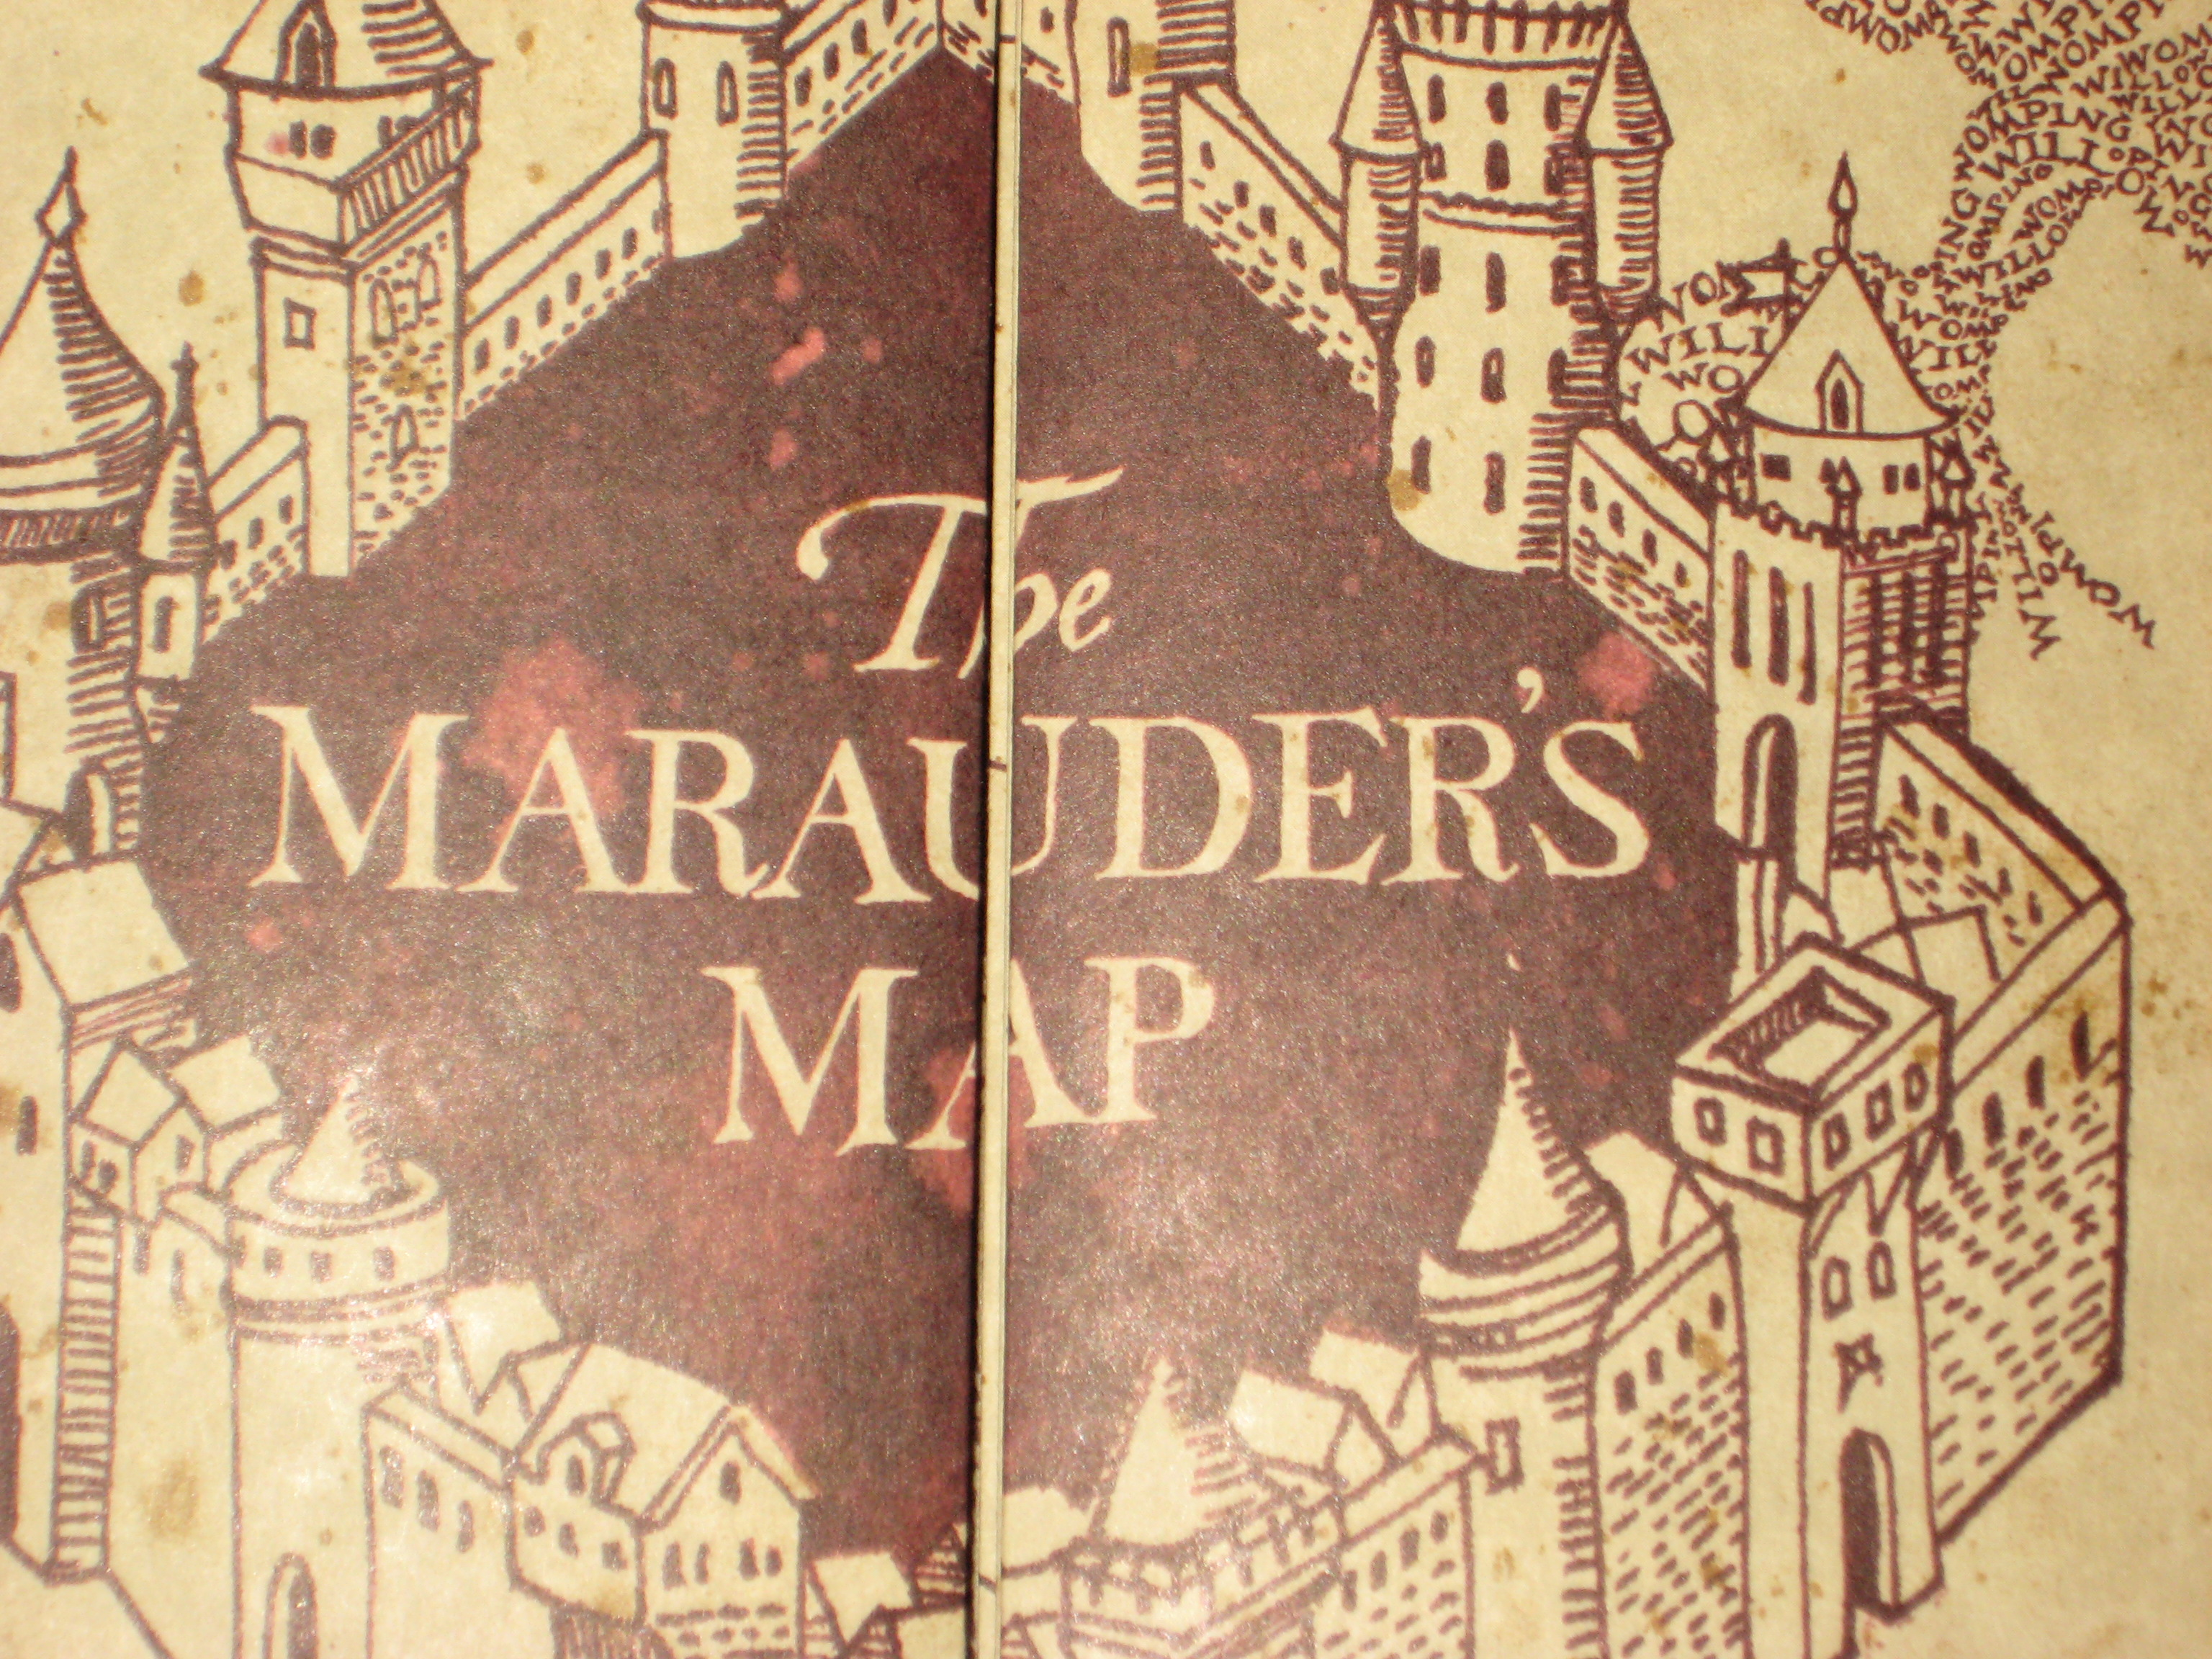 marauders map wallpaper iphone 6